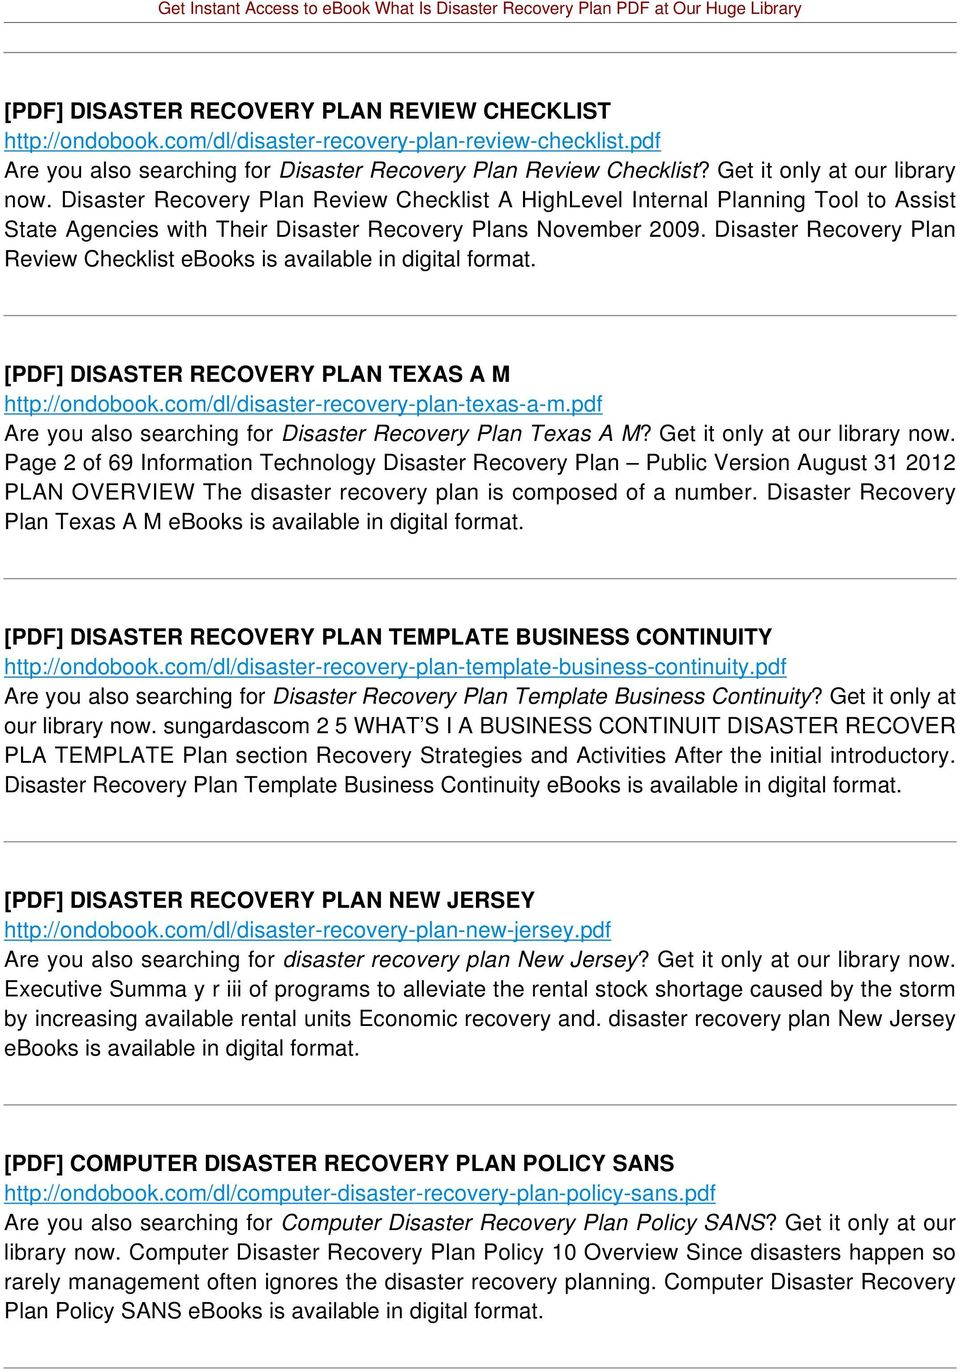 Disaster Recovery Plan Review Checklist ebooks is available in digital format. [PDF] DISASTER RECOVERY PLAN TEXAS A M http://ondobook.com/dl/disaster-recovery-plan-texas-a-m.